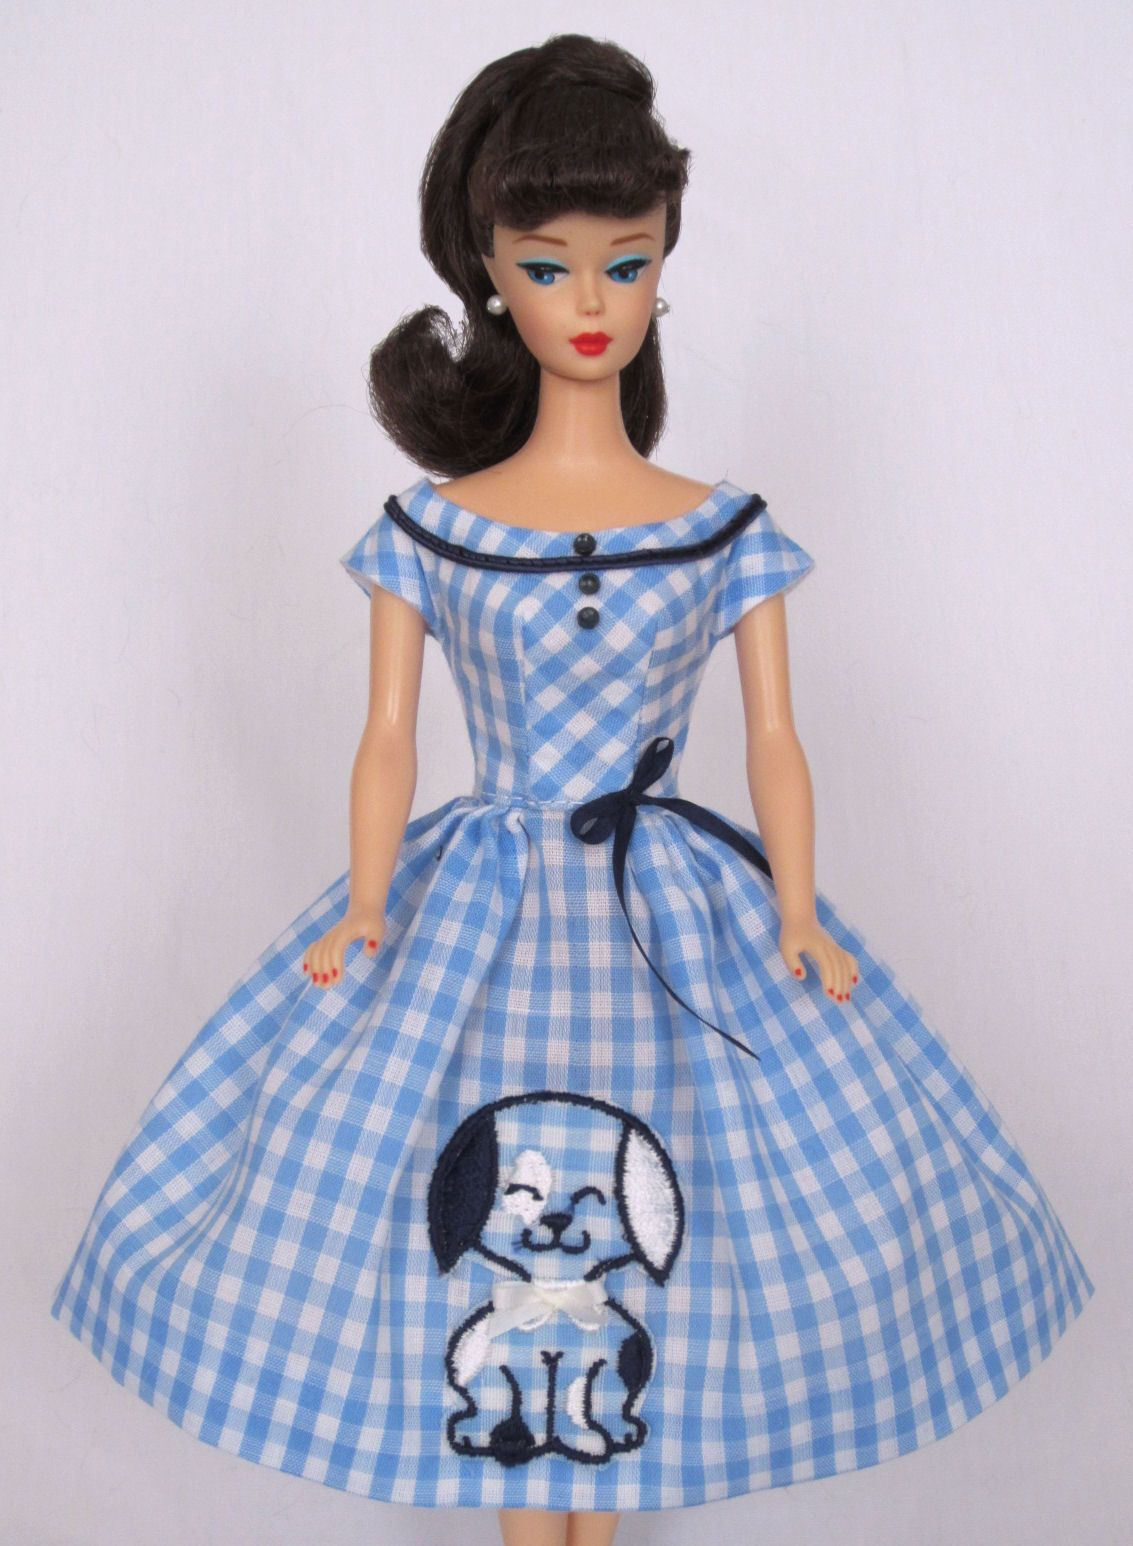 Sweet And Sassy Vintage Barbie Doll Dress Reproduction Barbie Clothes On Ebay Http Www Ebay Com Usr Fanfa Barbie Dress Barbie Clothes Vintage Barbie Dolls